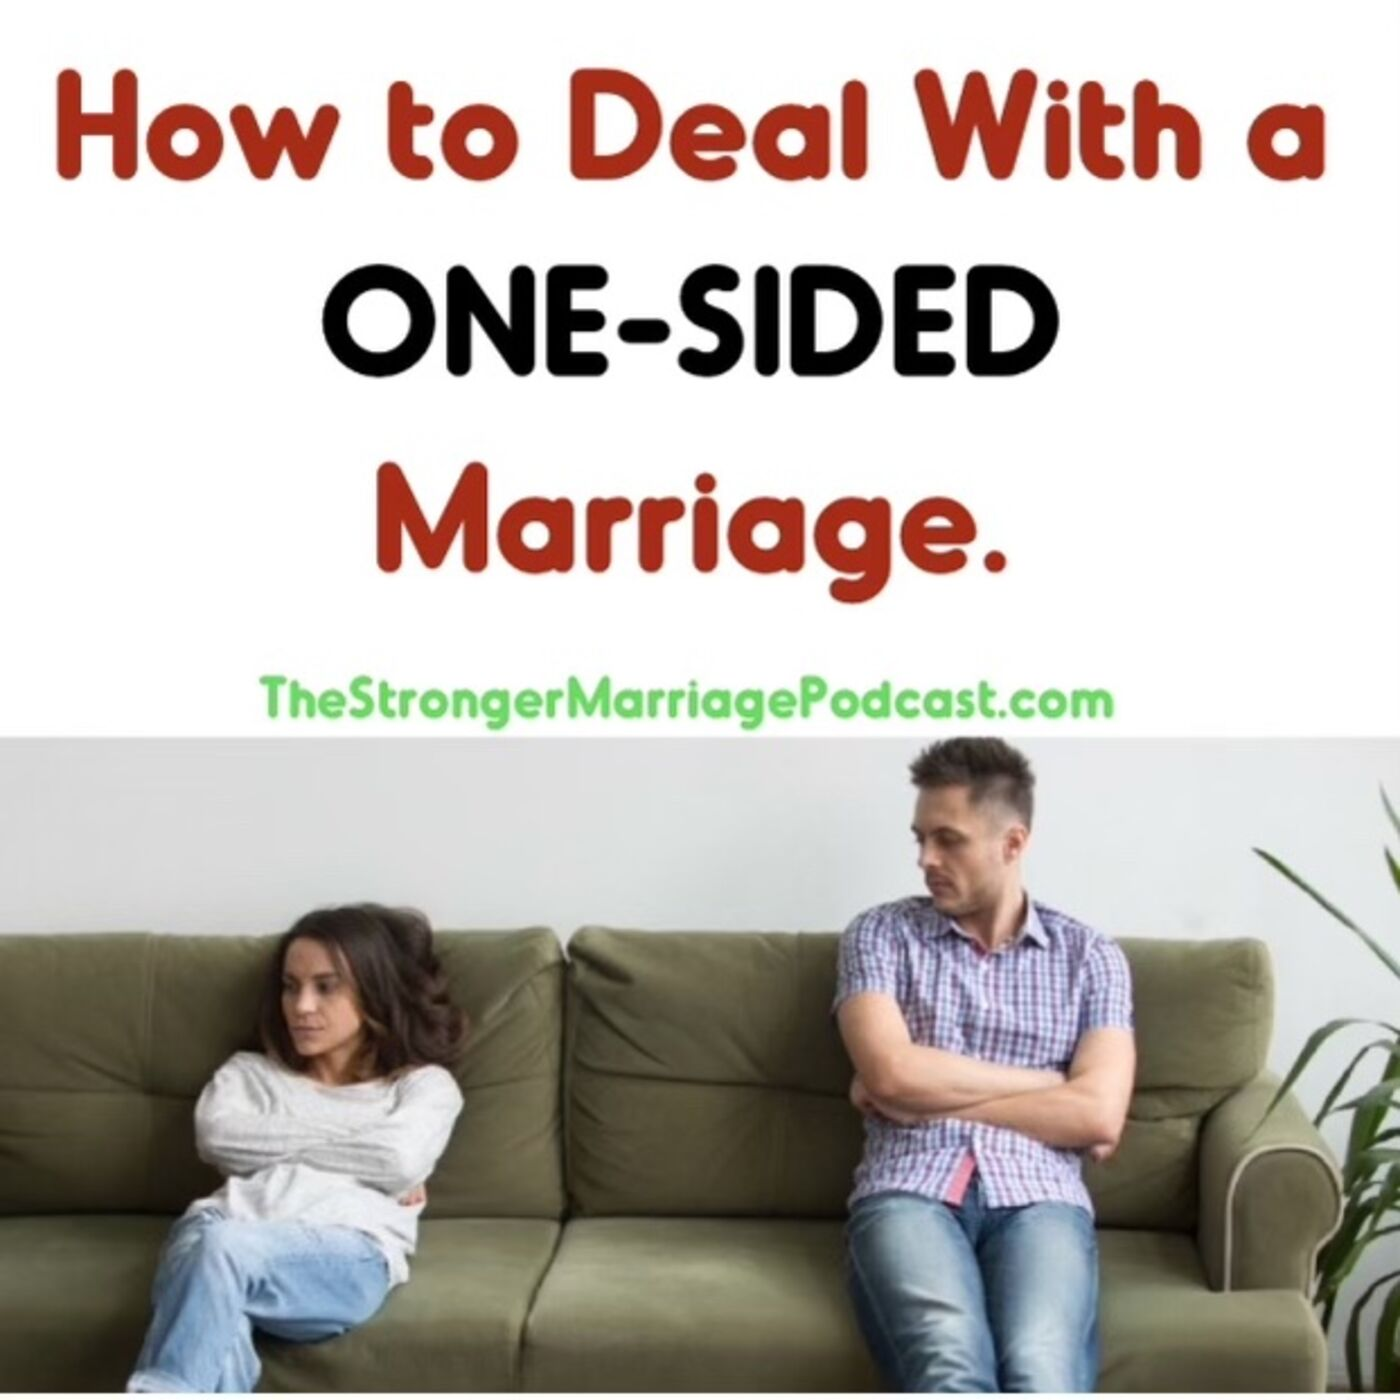 How To Deal With A ONE-SIDED Marriage